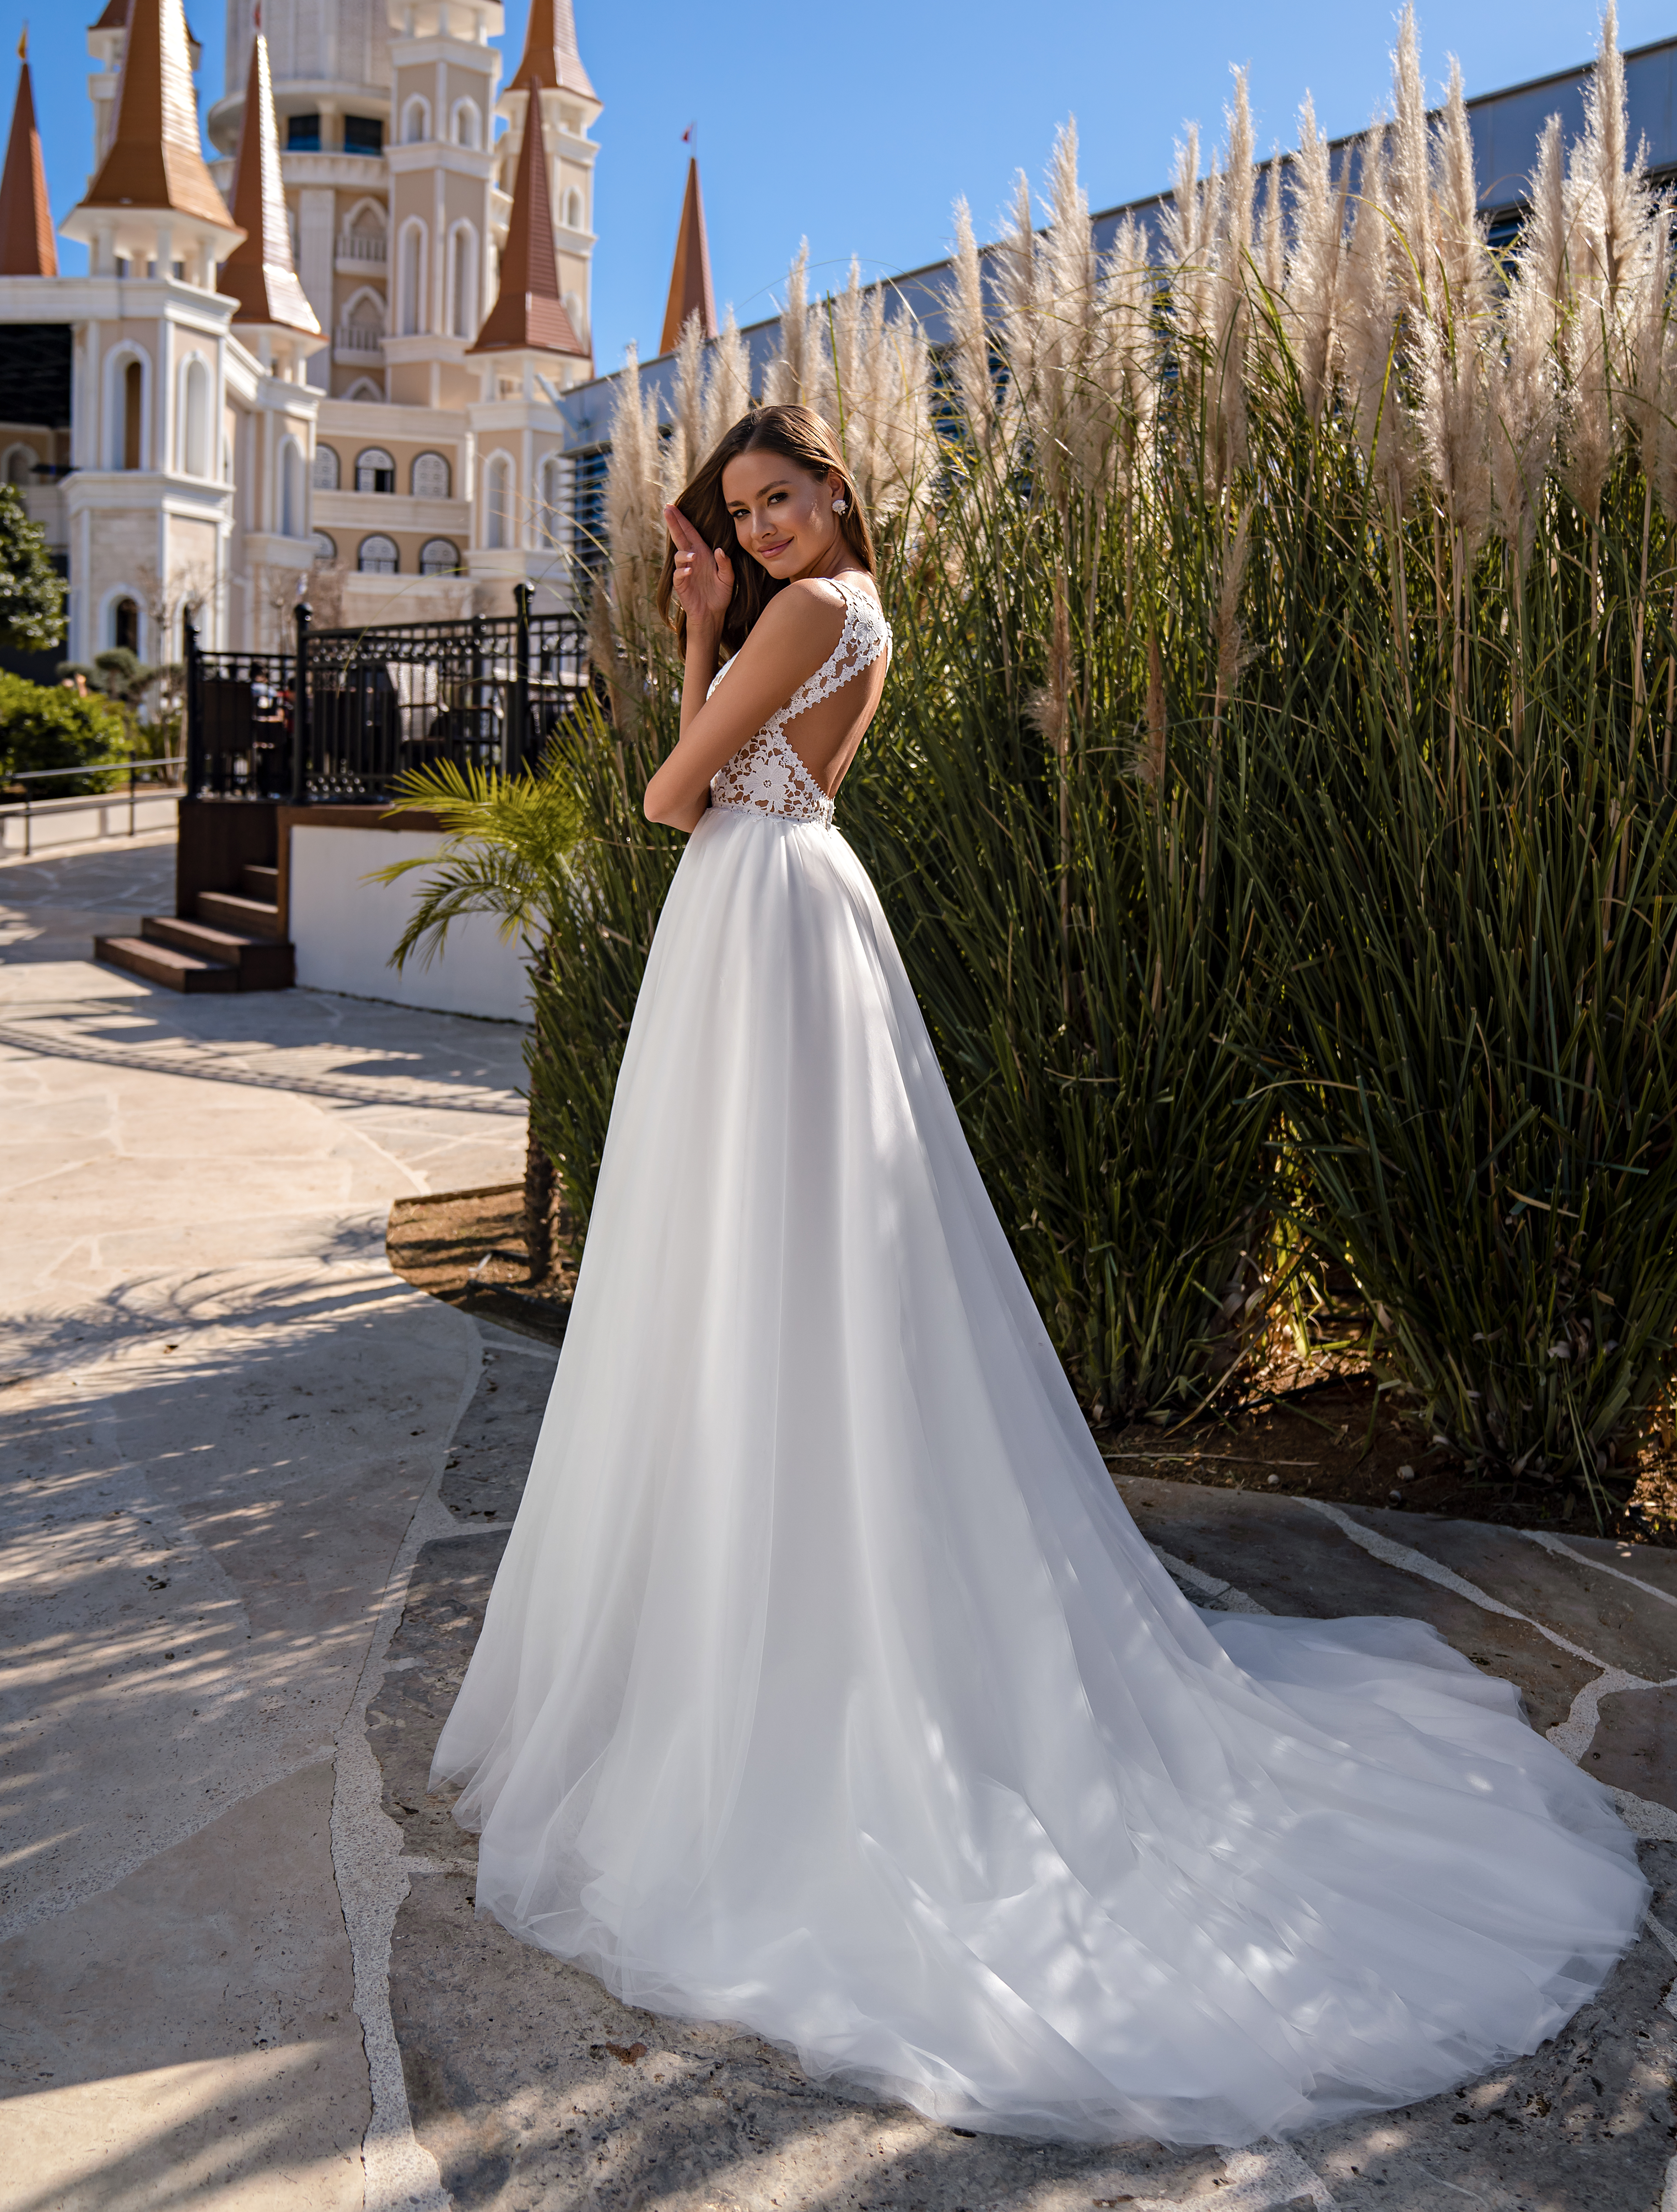 Wedding dress in the